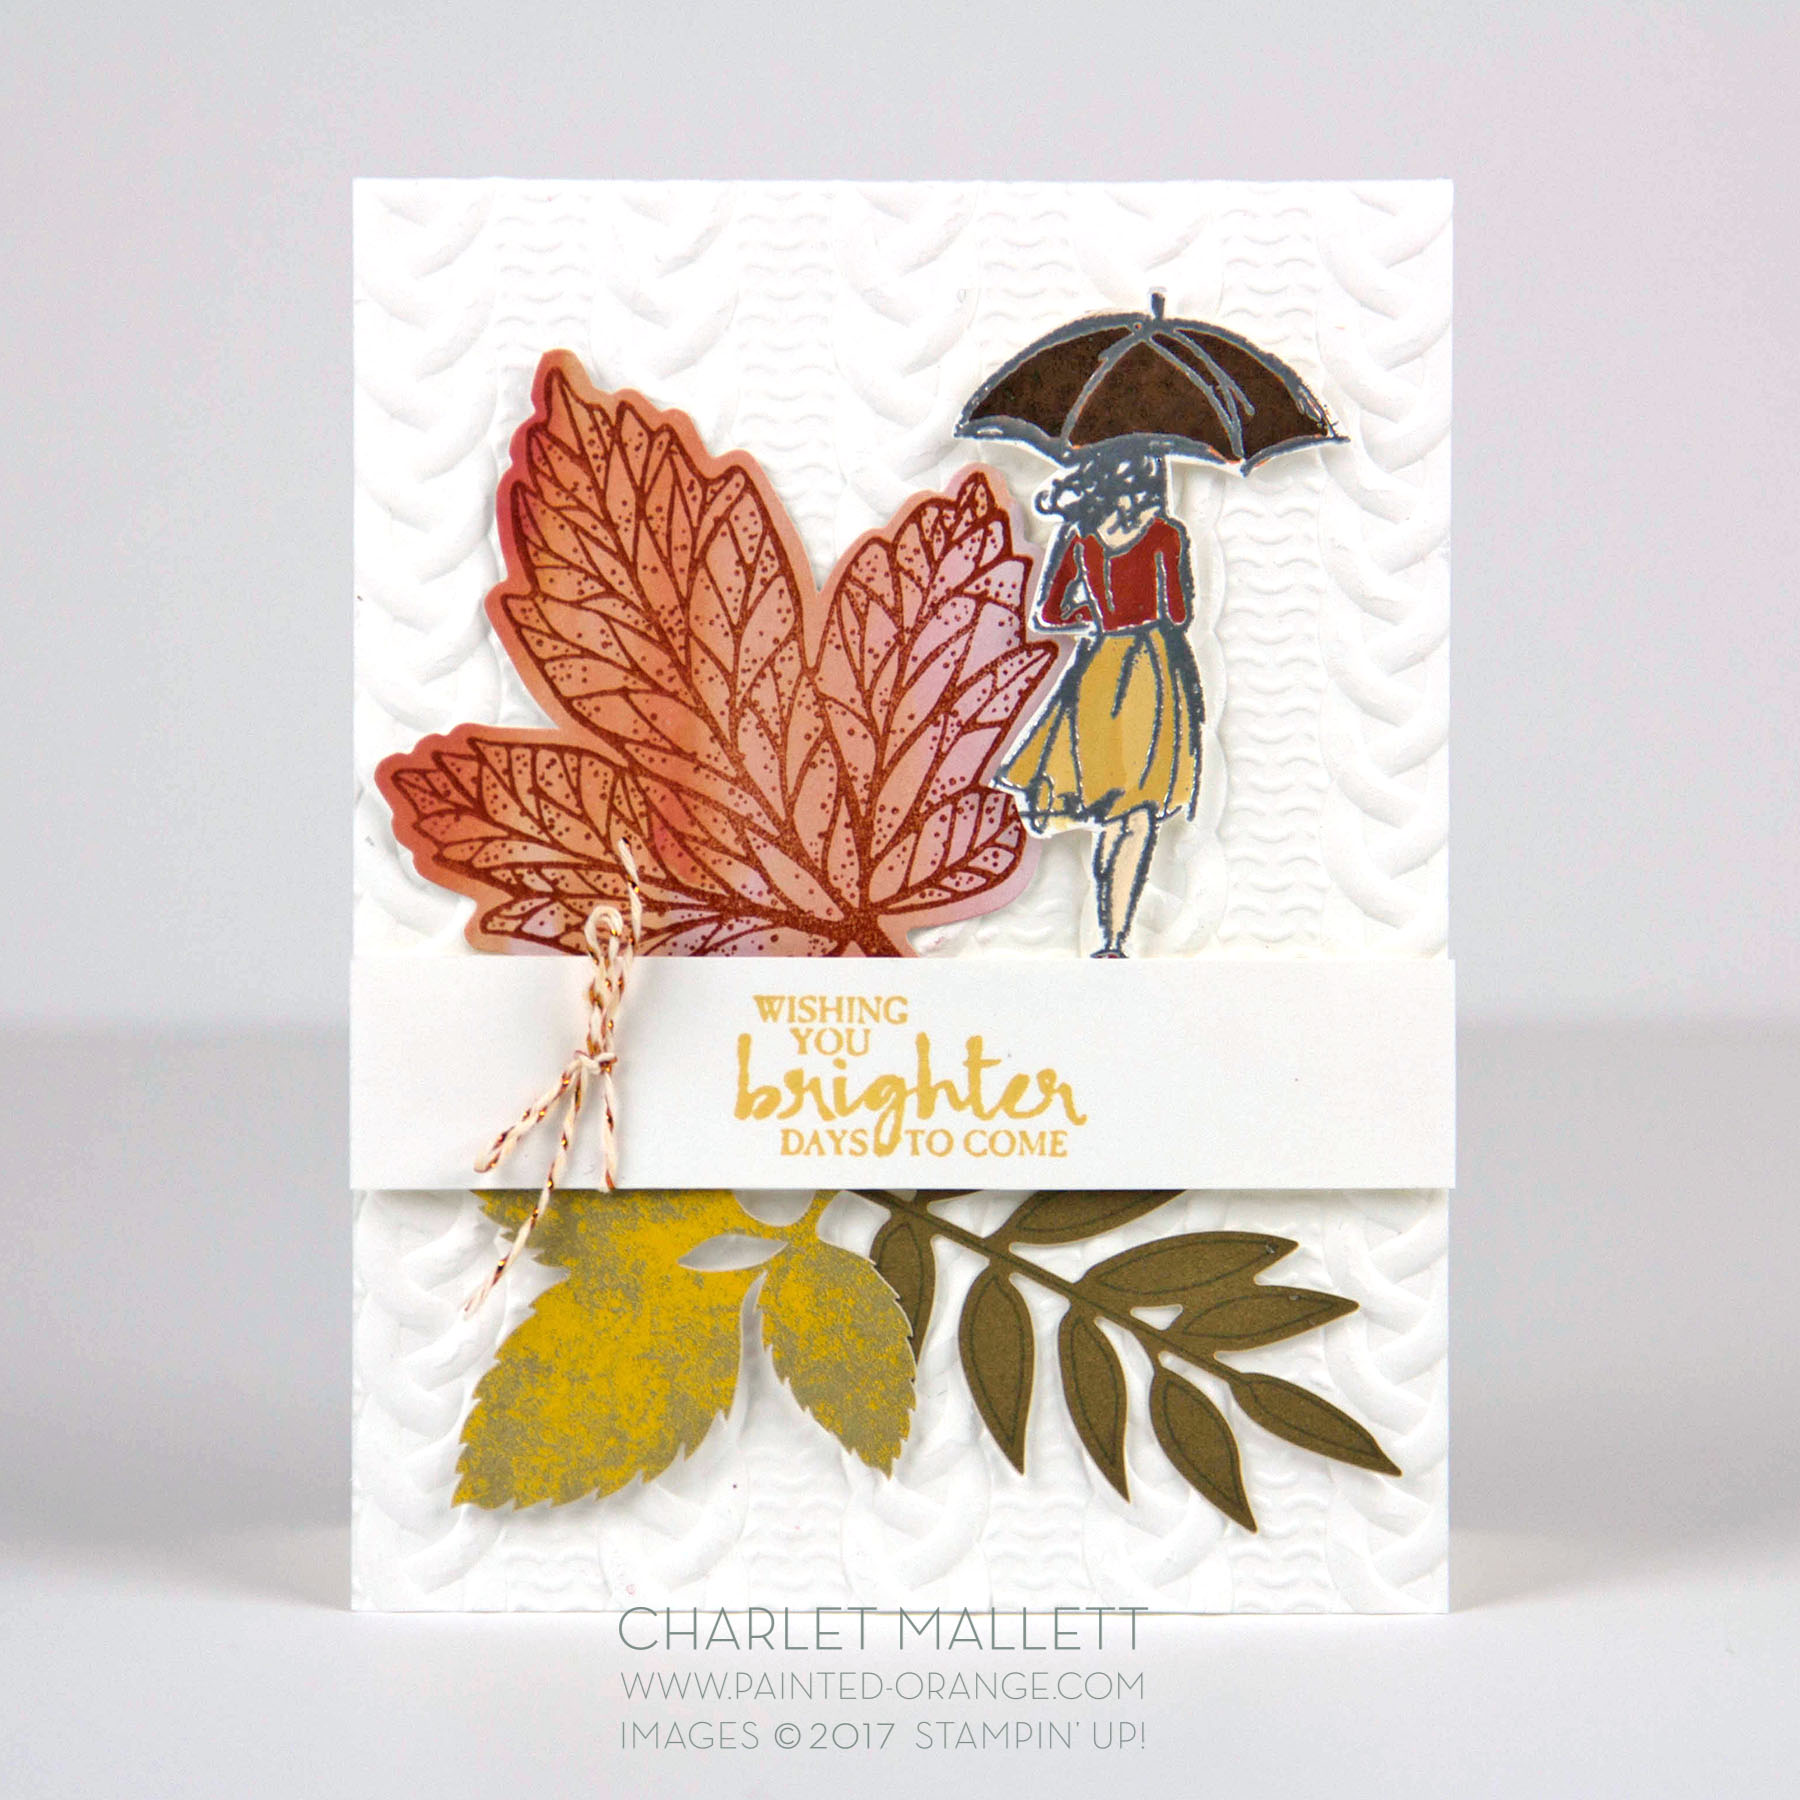 Beautiful You and Layered Leaves Sept 2017 Paper Pumpkin - Charlet Mallett, Stampin' Up!